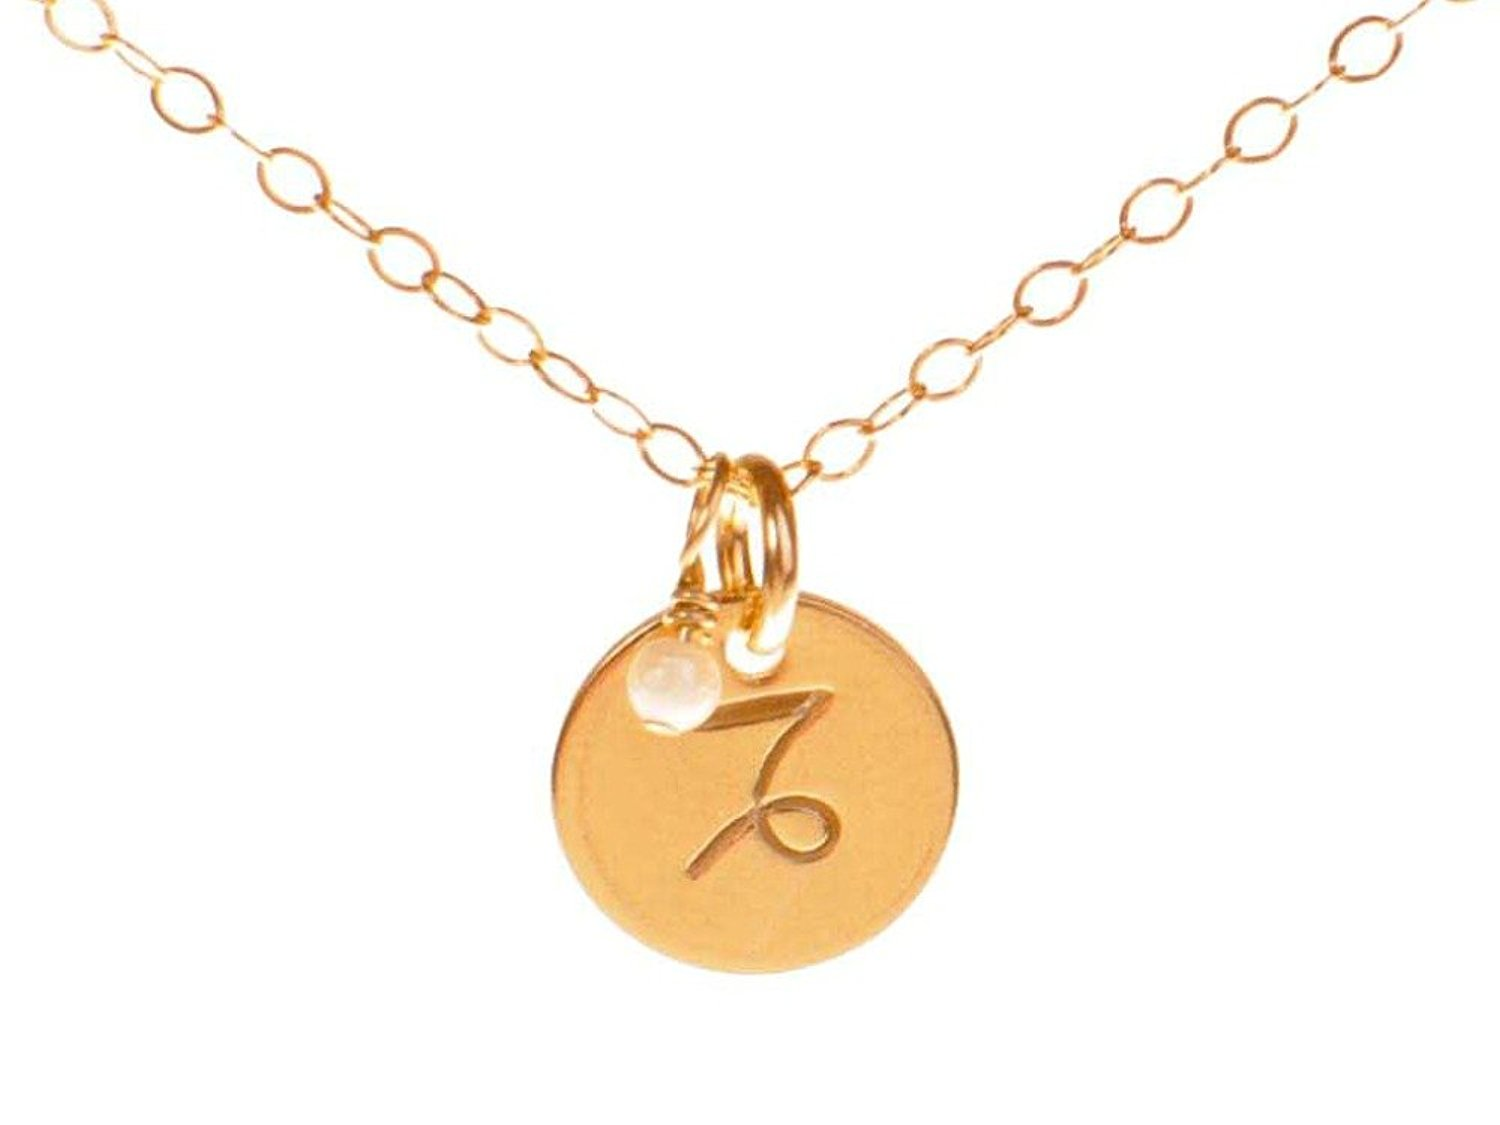 69074e3d67b8ab Get Quotations · Capricorn Necklace - Tiny Gold Filled Simple Zodiac Sign  with Birth Month Charm, Zodiac Pendant